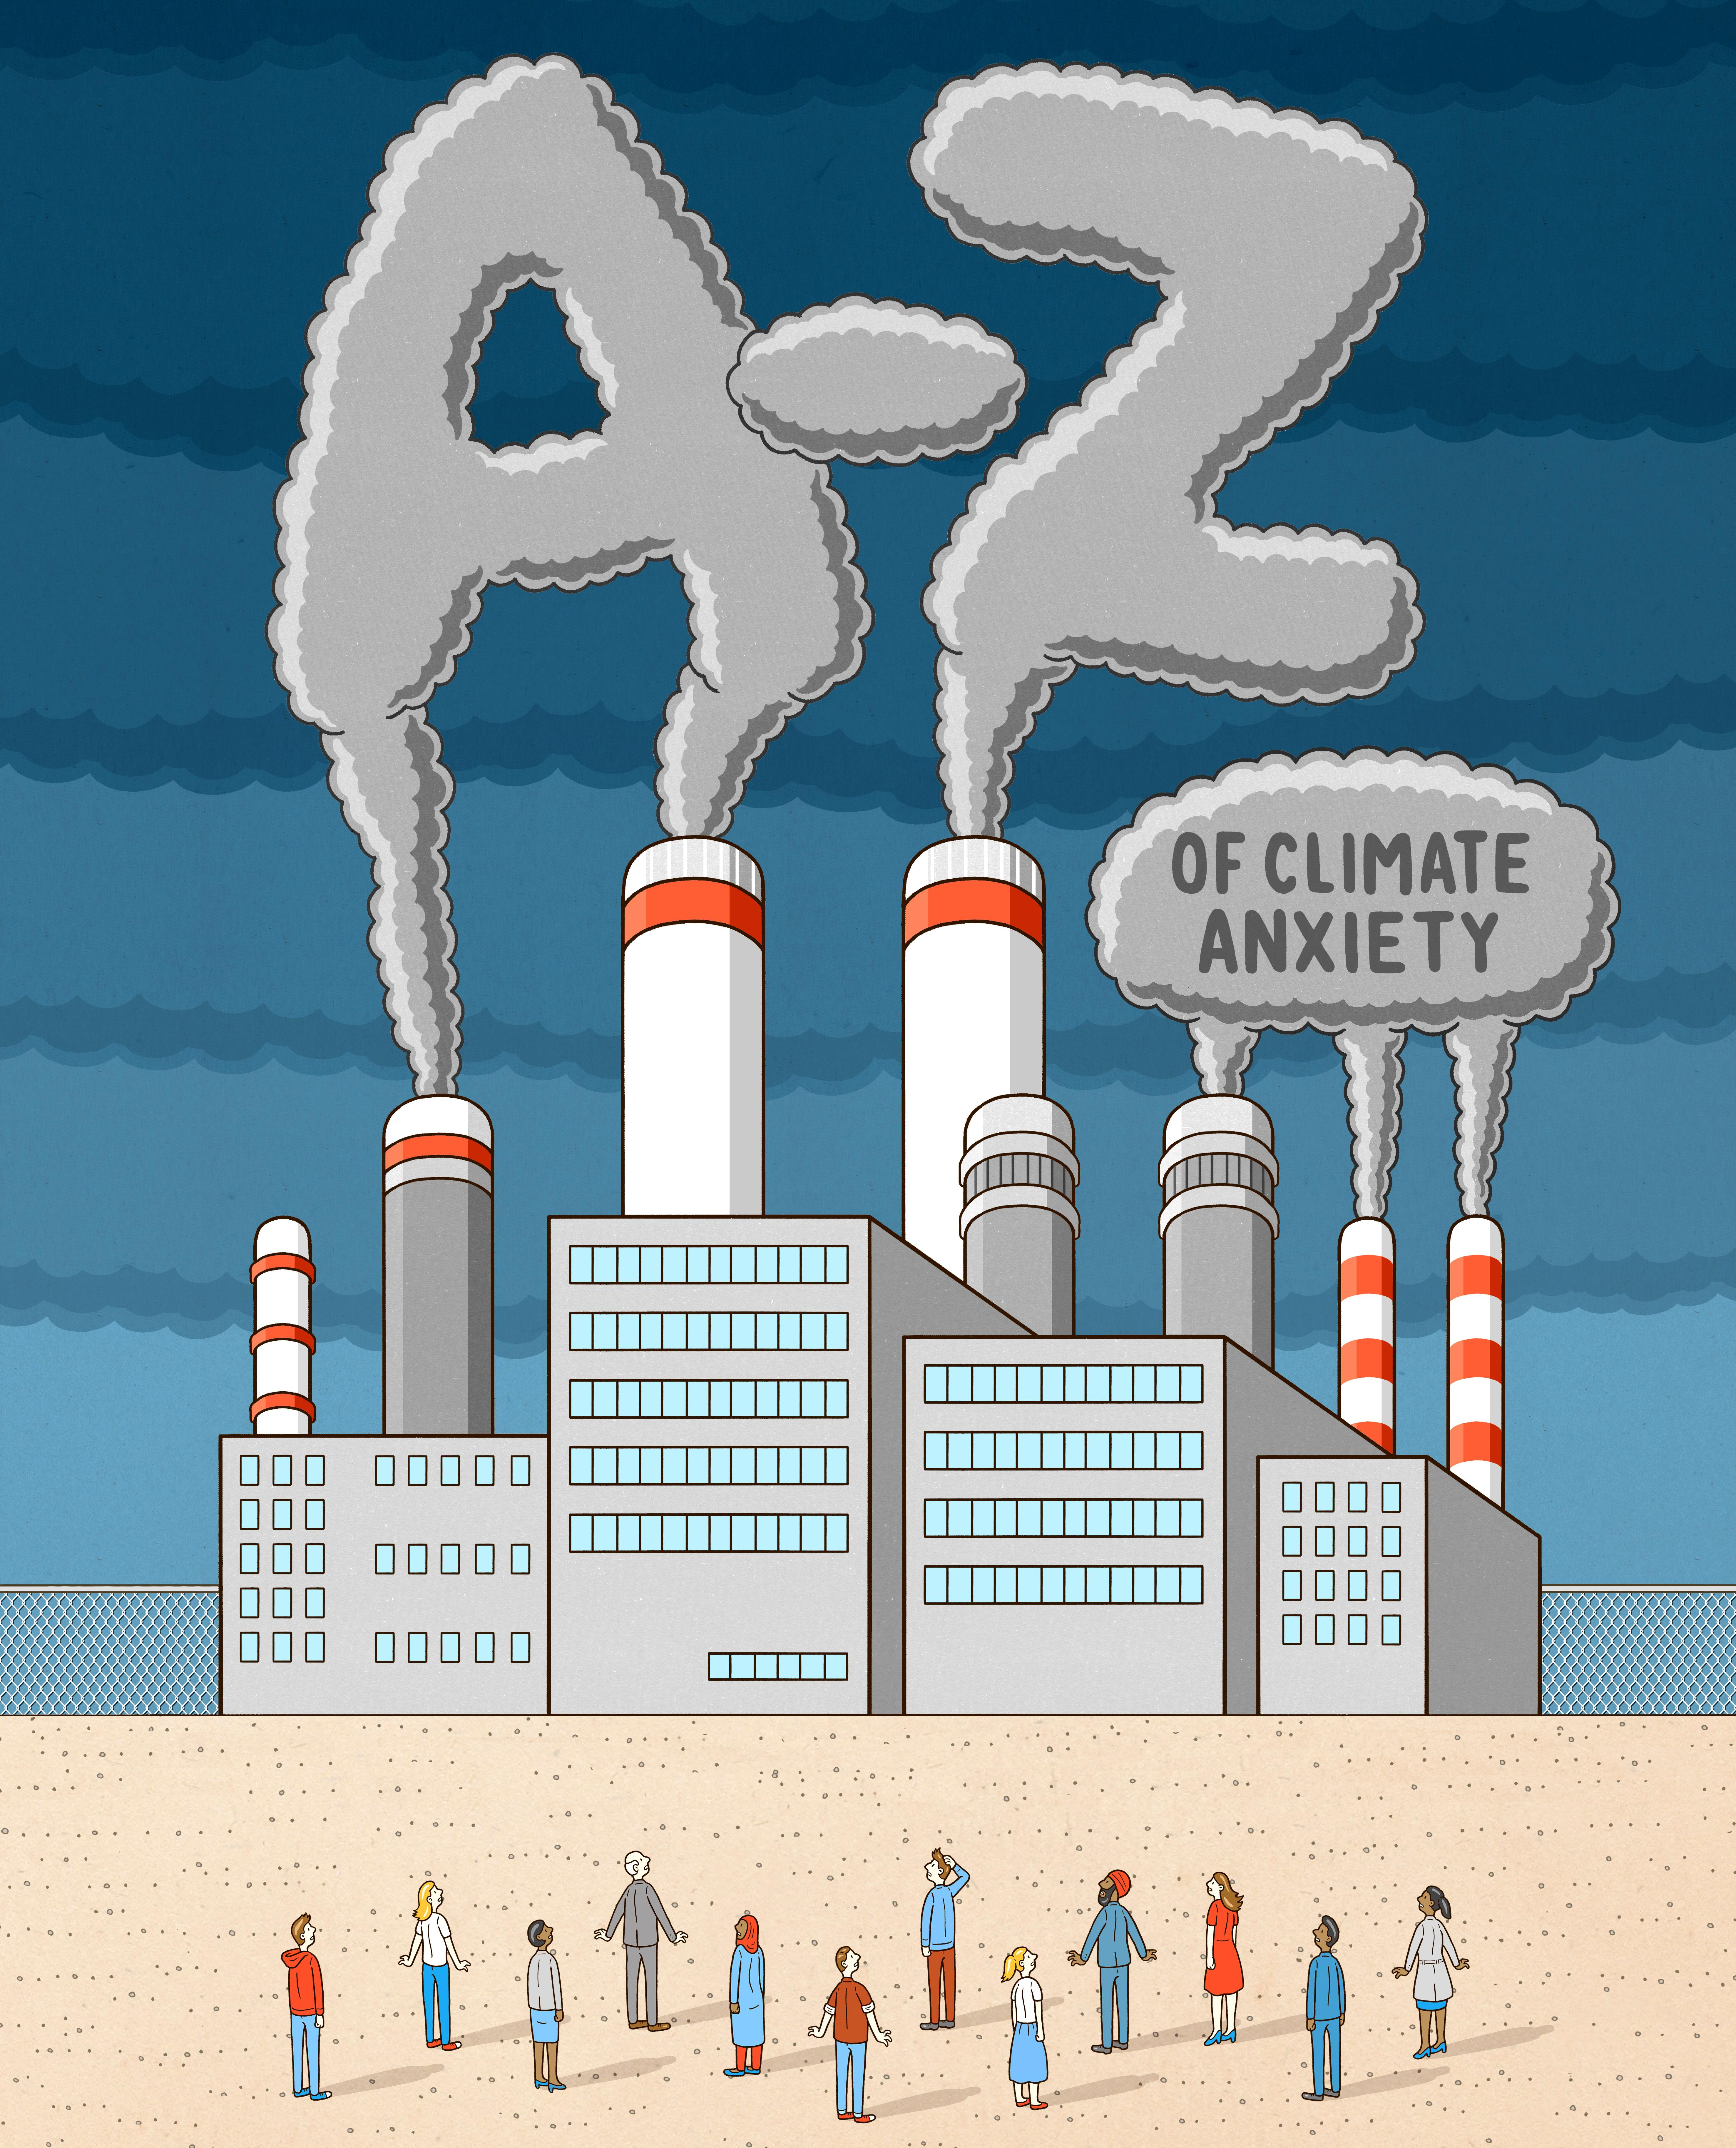 A-Z of climate anxiety: how to avoid meltdown